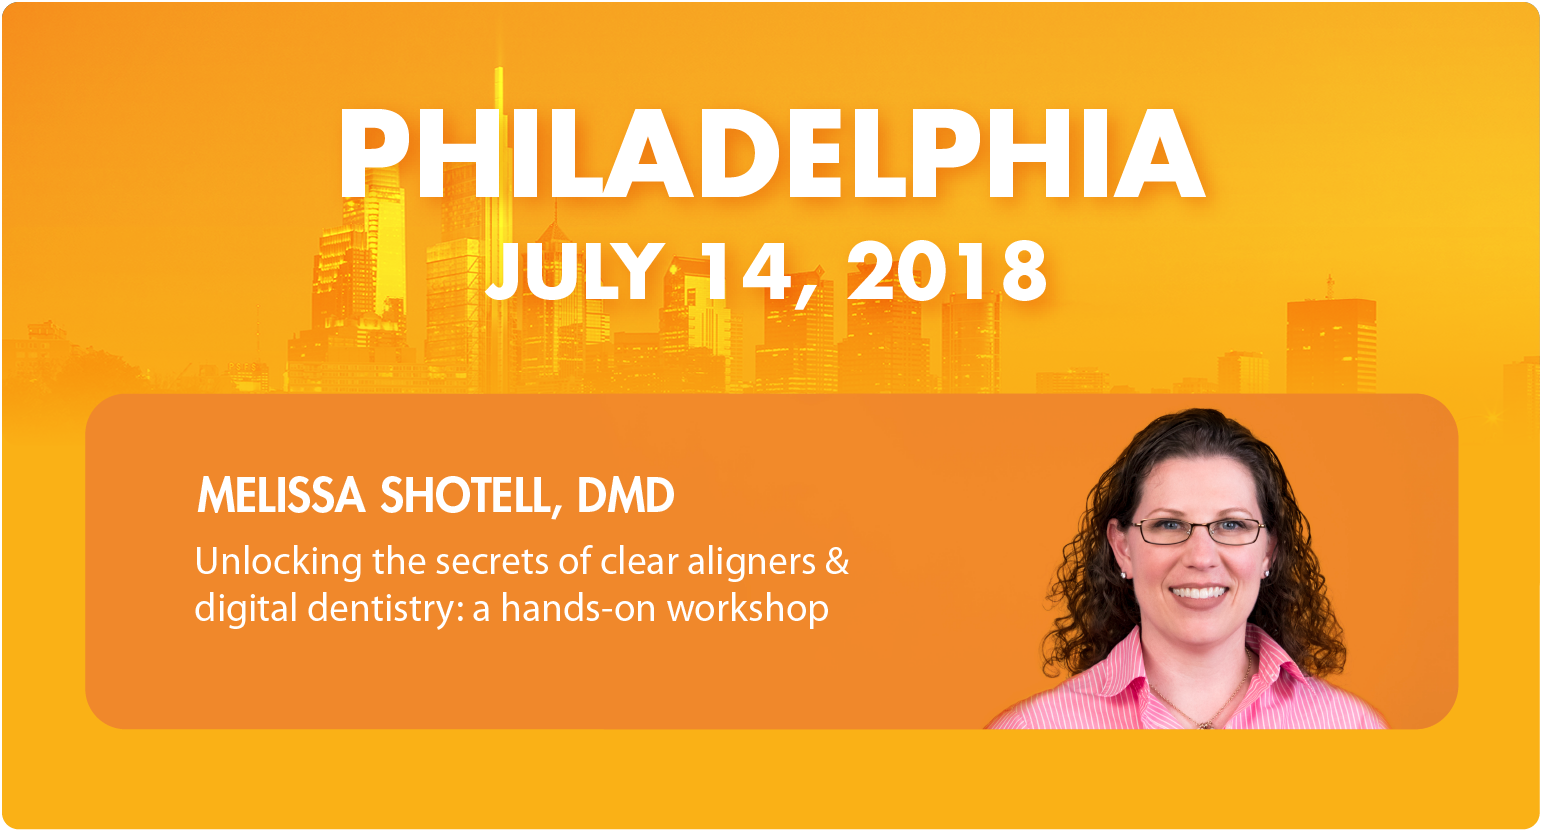 Philly - Unlocking the Secrets of Clear Aligners and Digital Dentistry: Hands-on Workshop